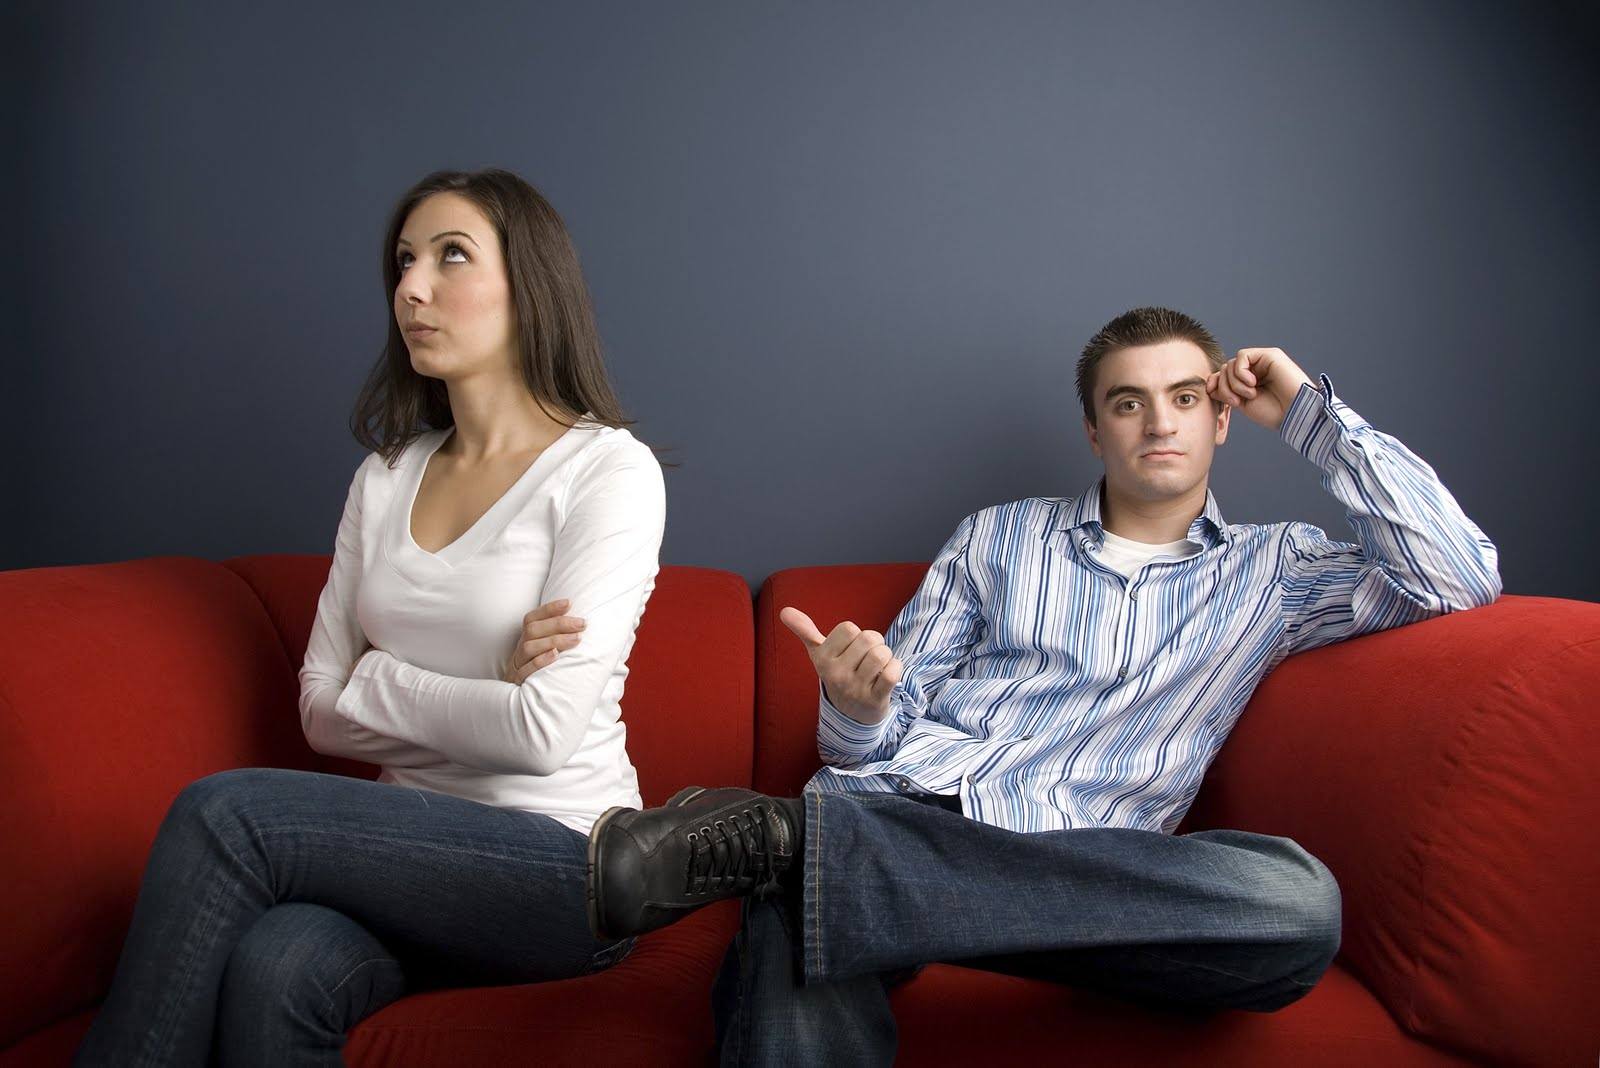 Discussion on this topic: How to Handle Disagreements with Your Spouse , how-to-handle-disagreements-with-your-spouse/